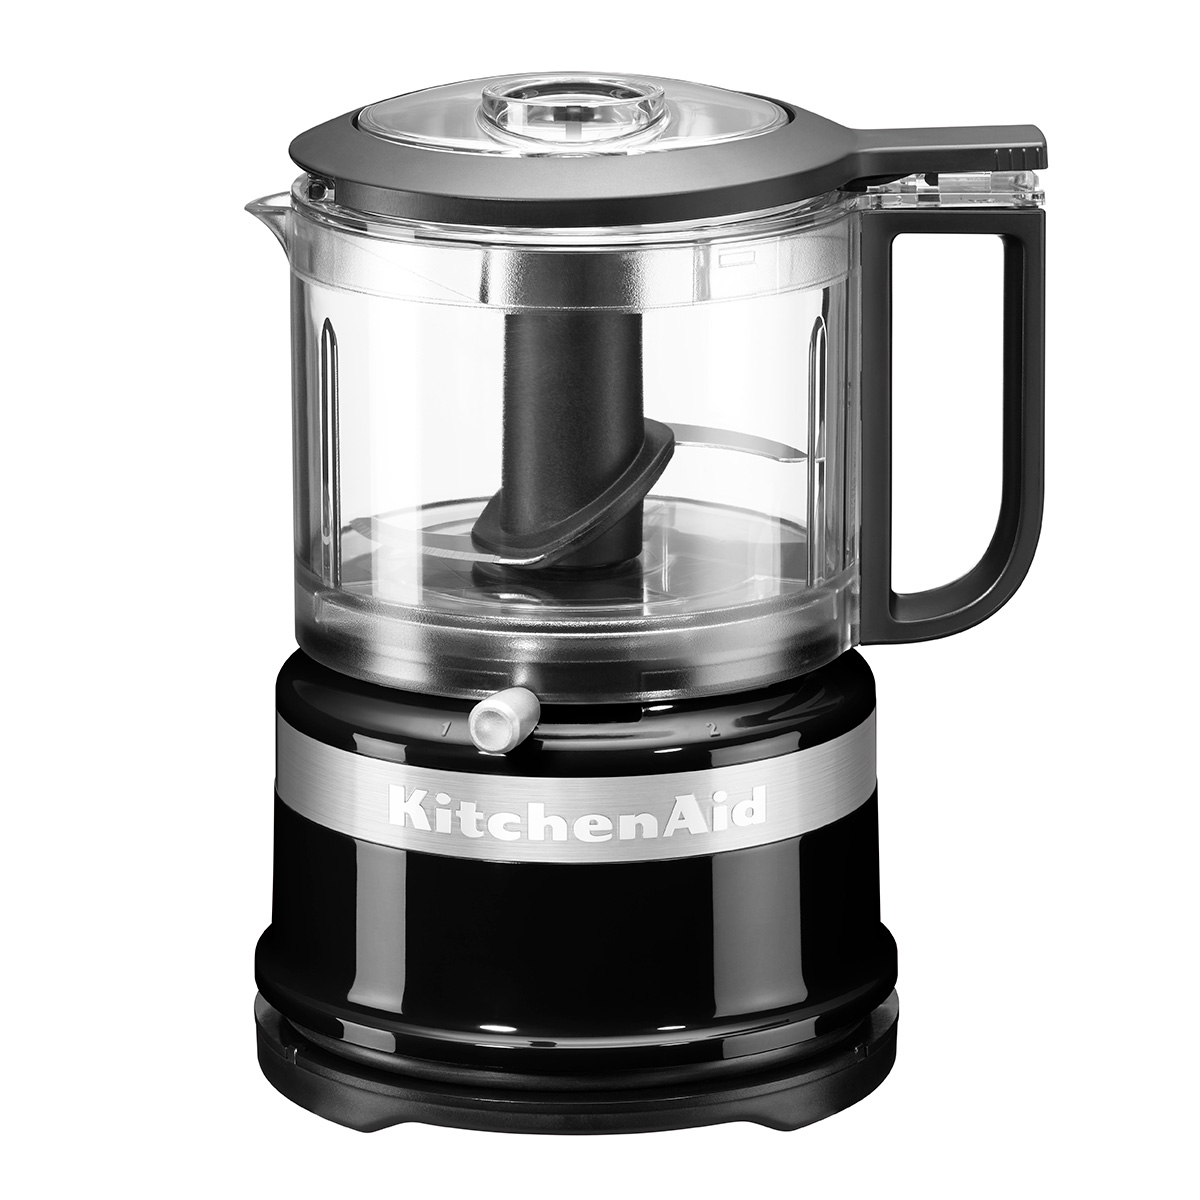 KitchenAid mini-foodprocessor - Classic - Sort